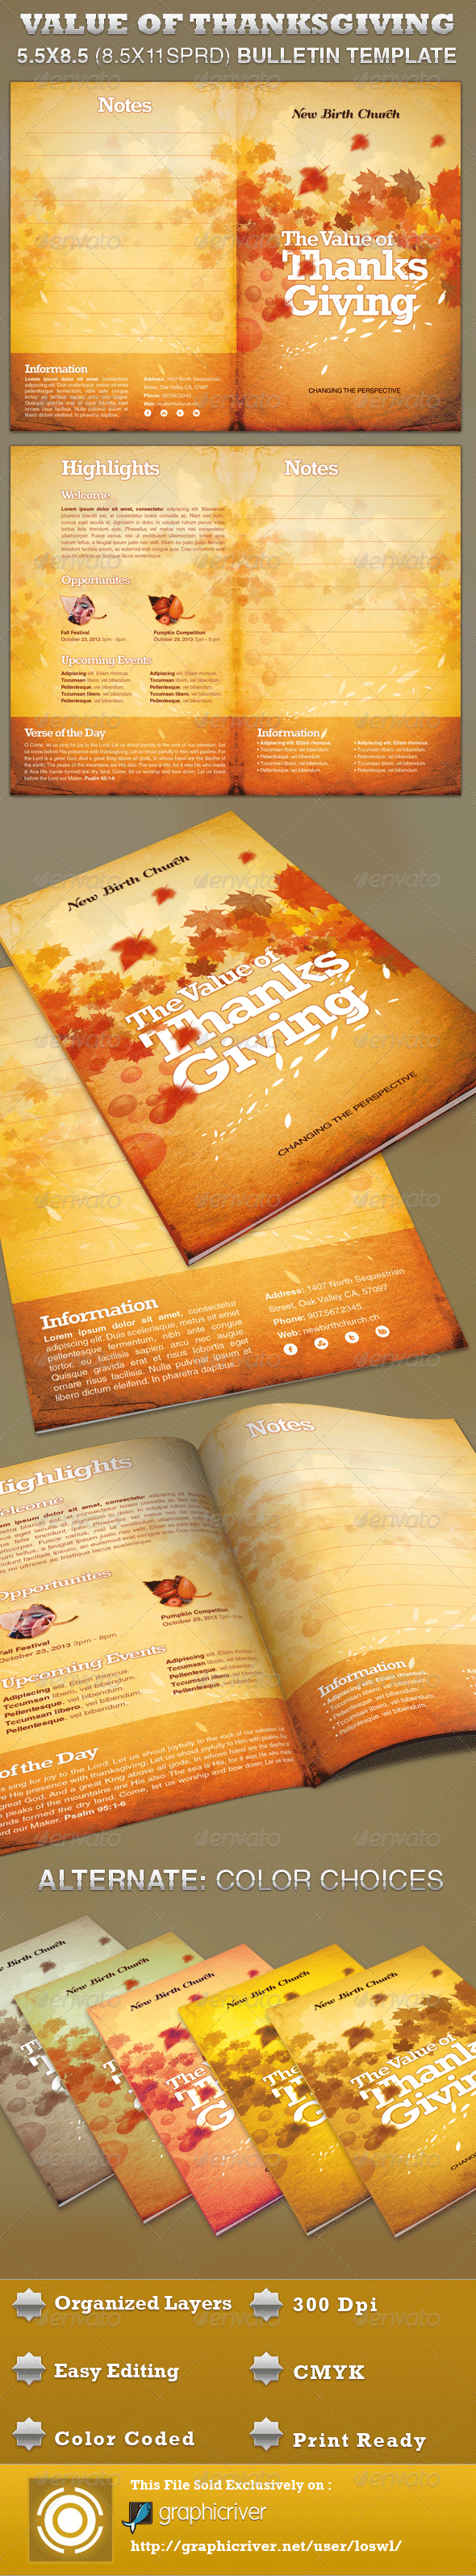 The Value Of Thanksgiving Church Bulletin Template  Churches